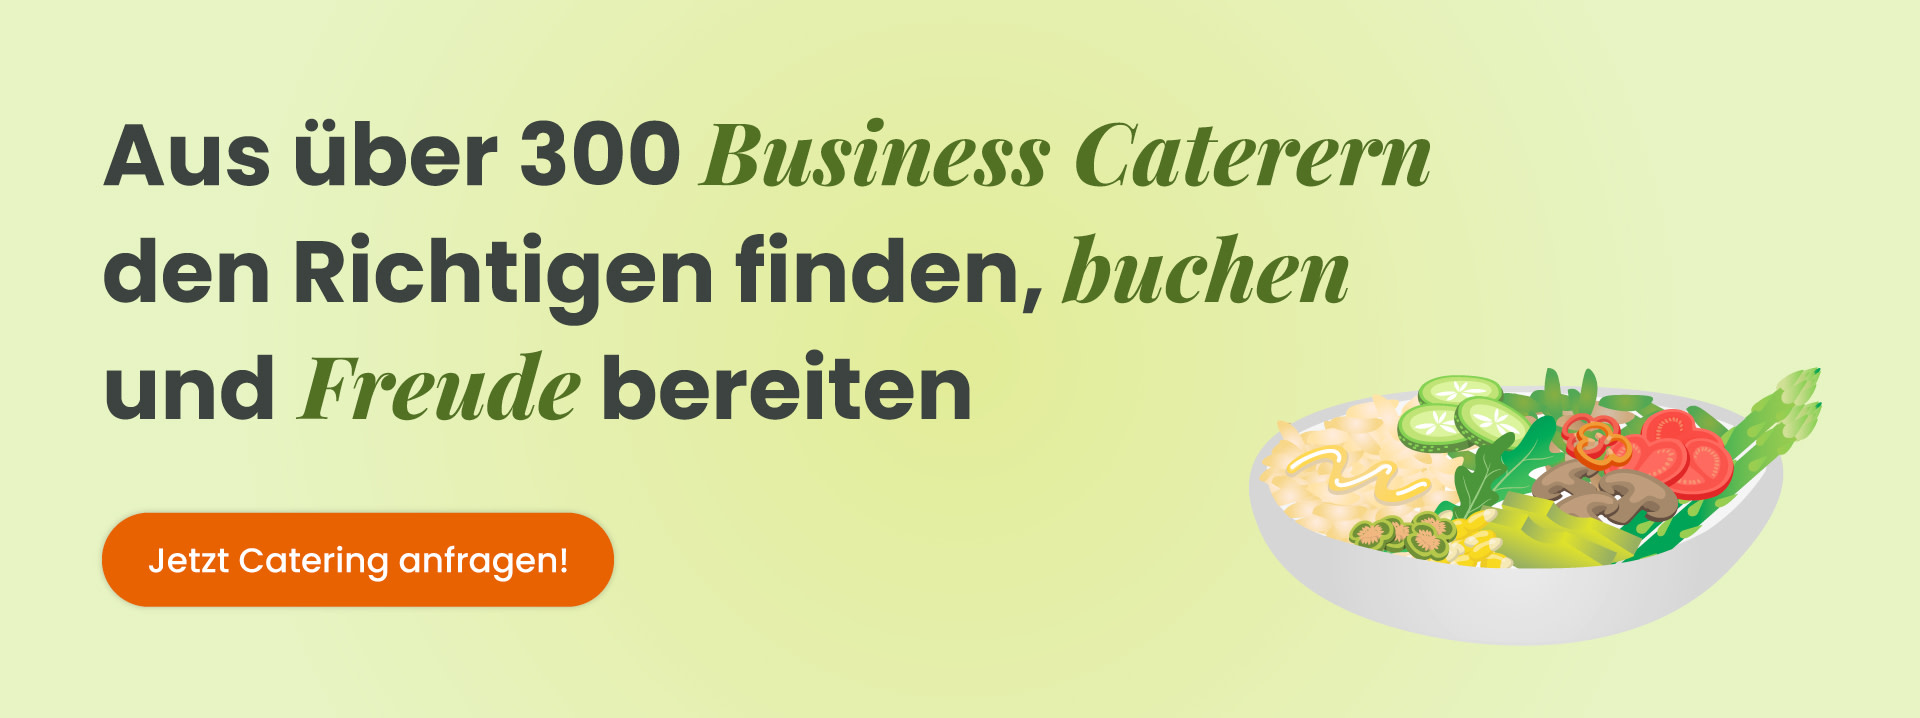 Business Catering anfragen